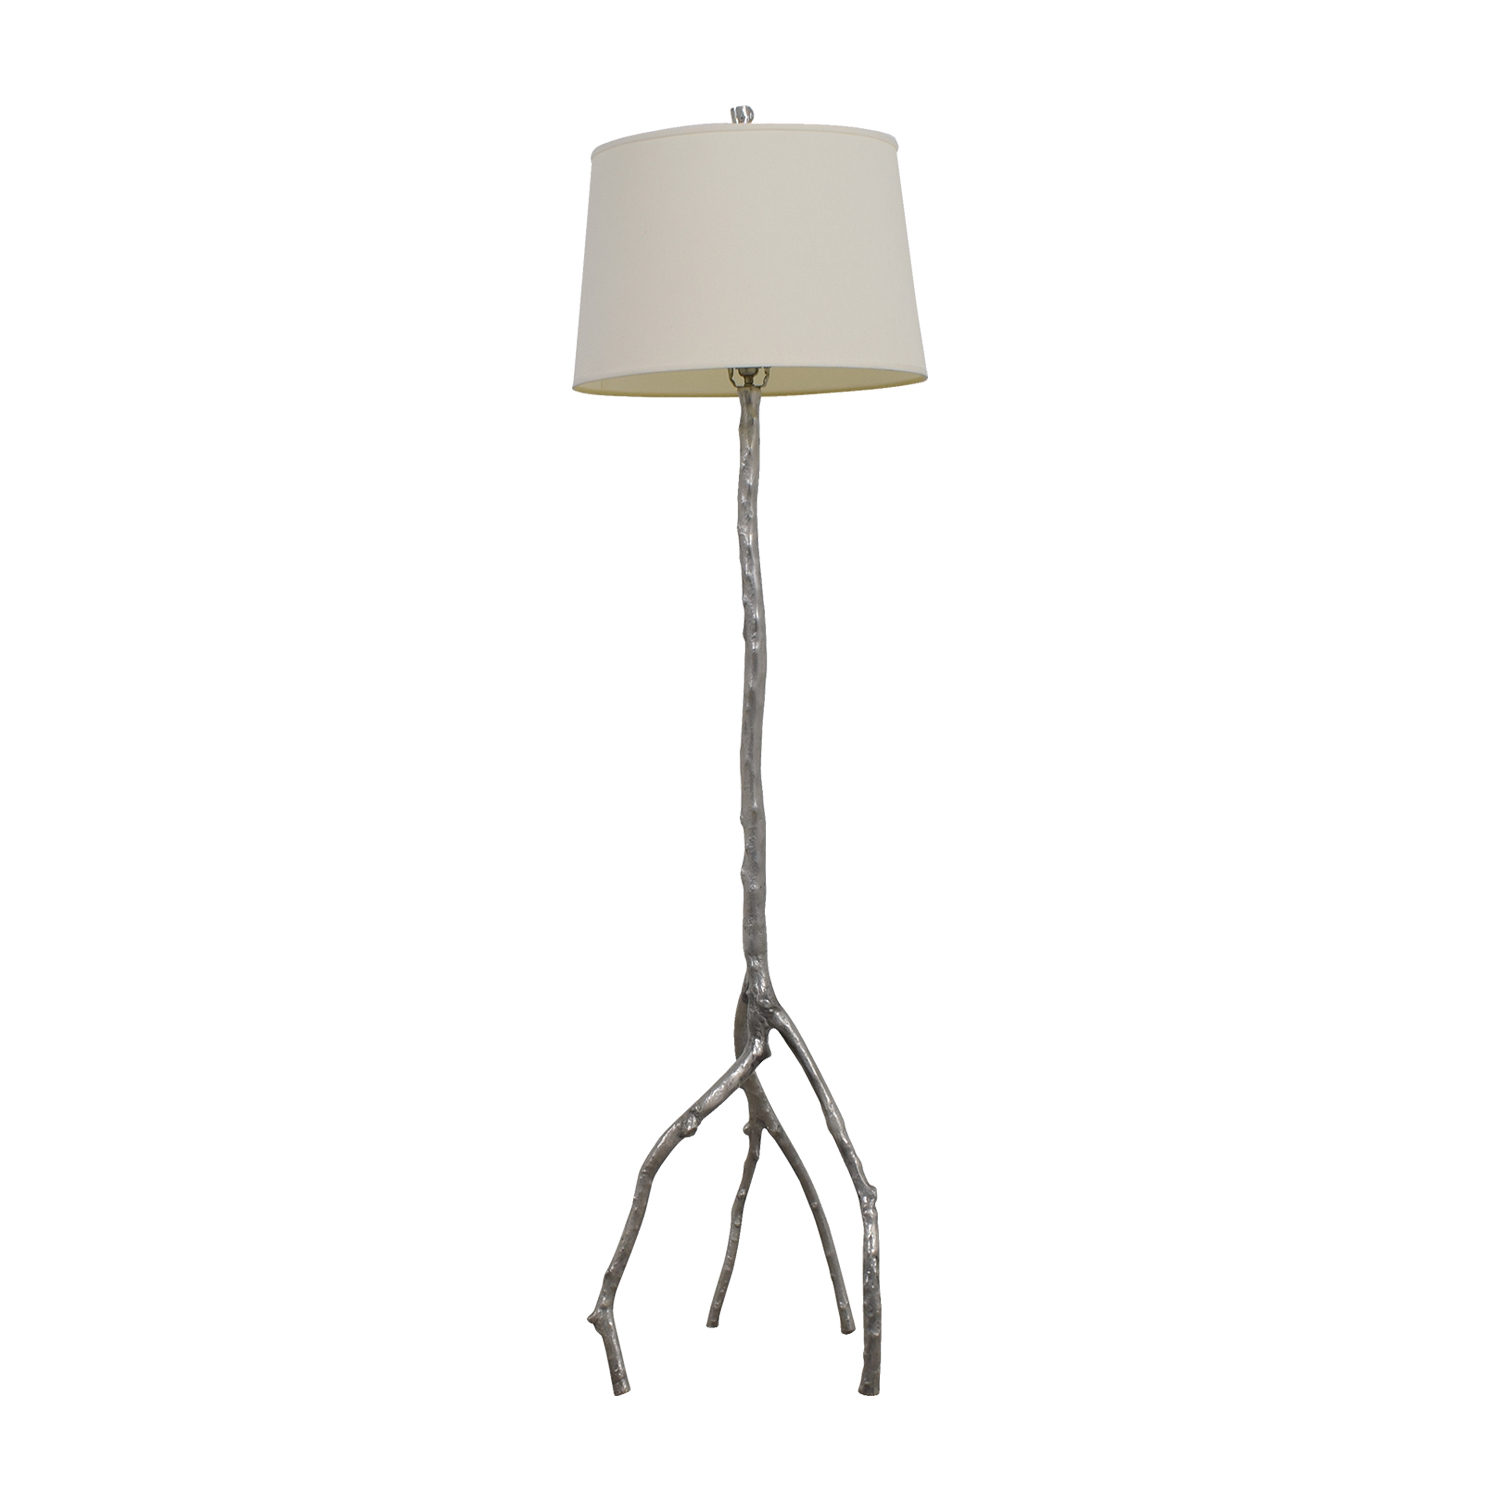 Michael Aram Michael Aram Custom Floor Lamp nj